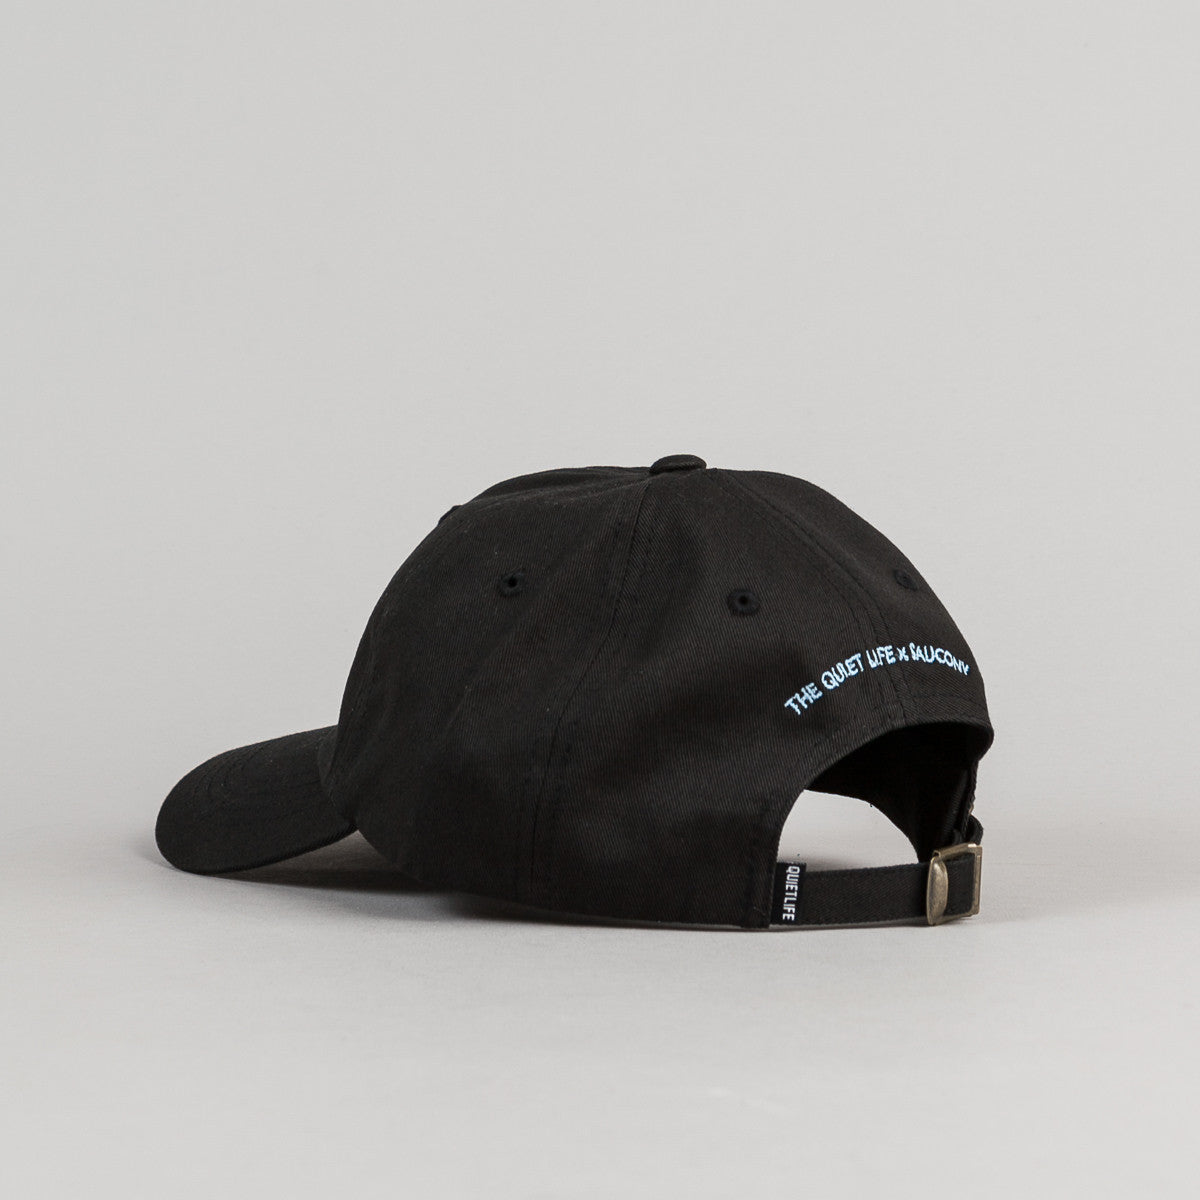 The Quiet Life X Saucony Triangle Dad Hat - Black